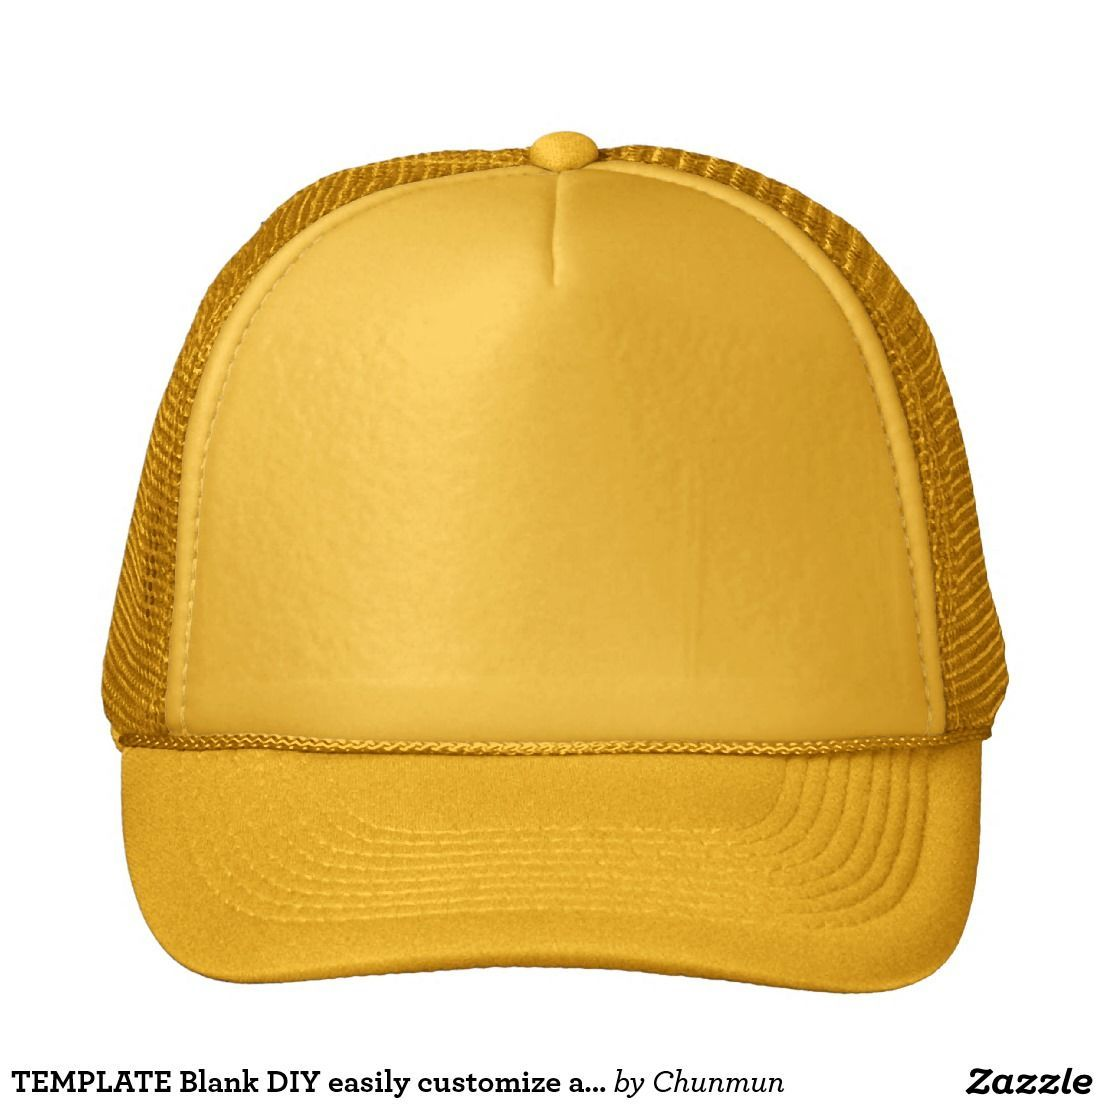 Template Blank Diy Easily Customize Add Text Photo Trucker Hat Zazzle Com Skincare Skin Clearskin Antiaging Collagen Hea Trucker Hat Hats Add Text Photo